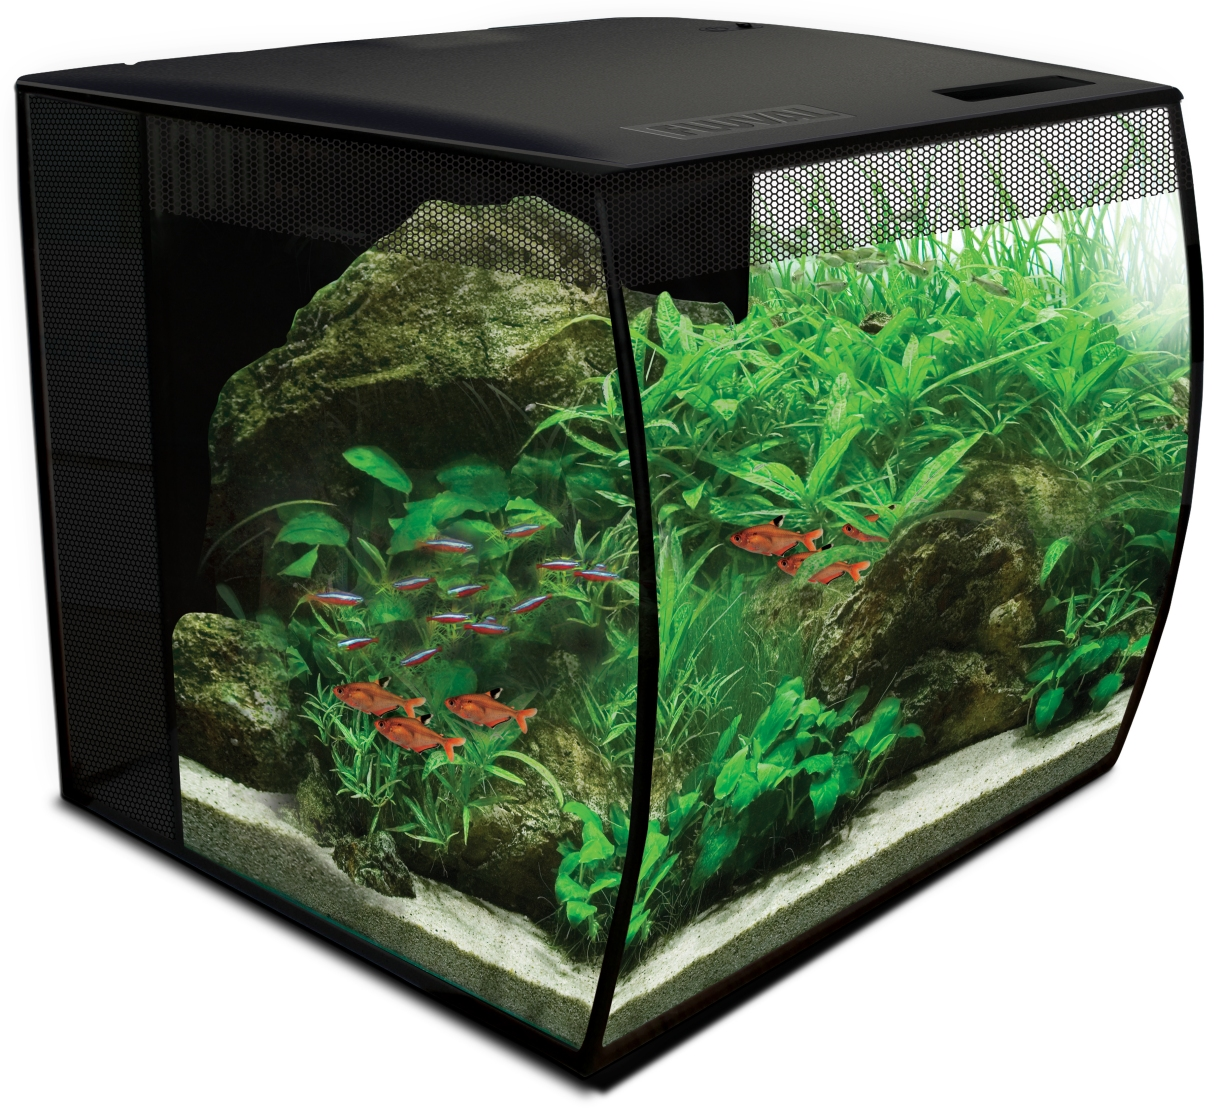 Fluval complete aquarium flex 34 l for Chauffage aquarium